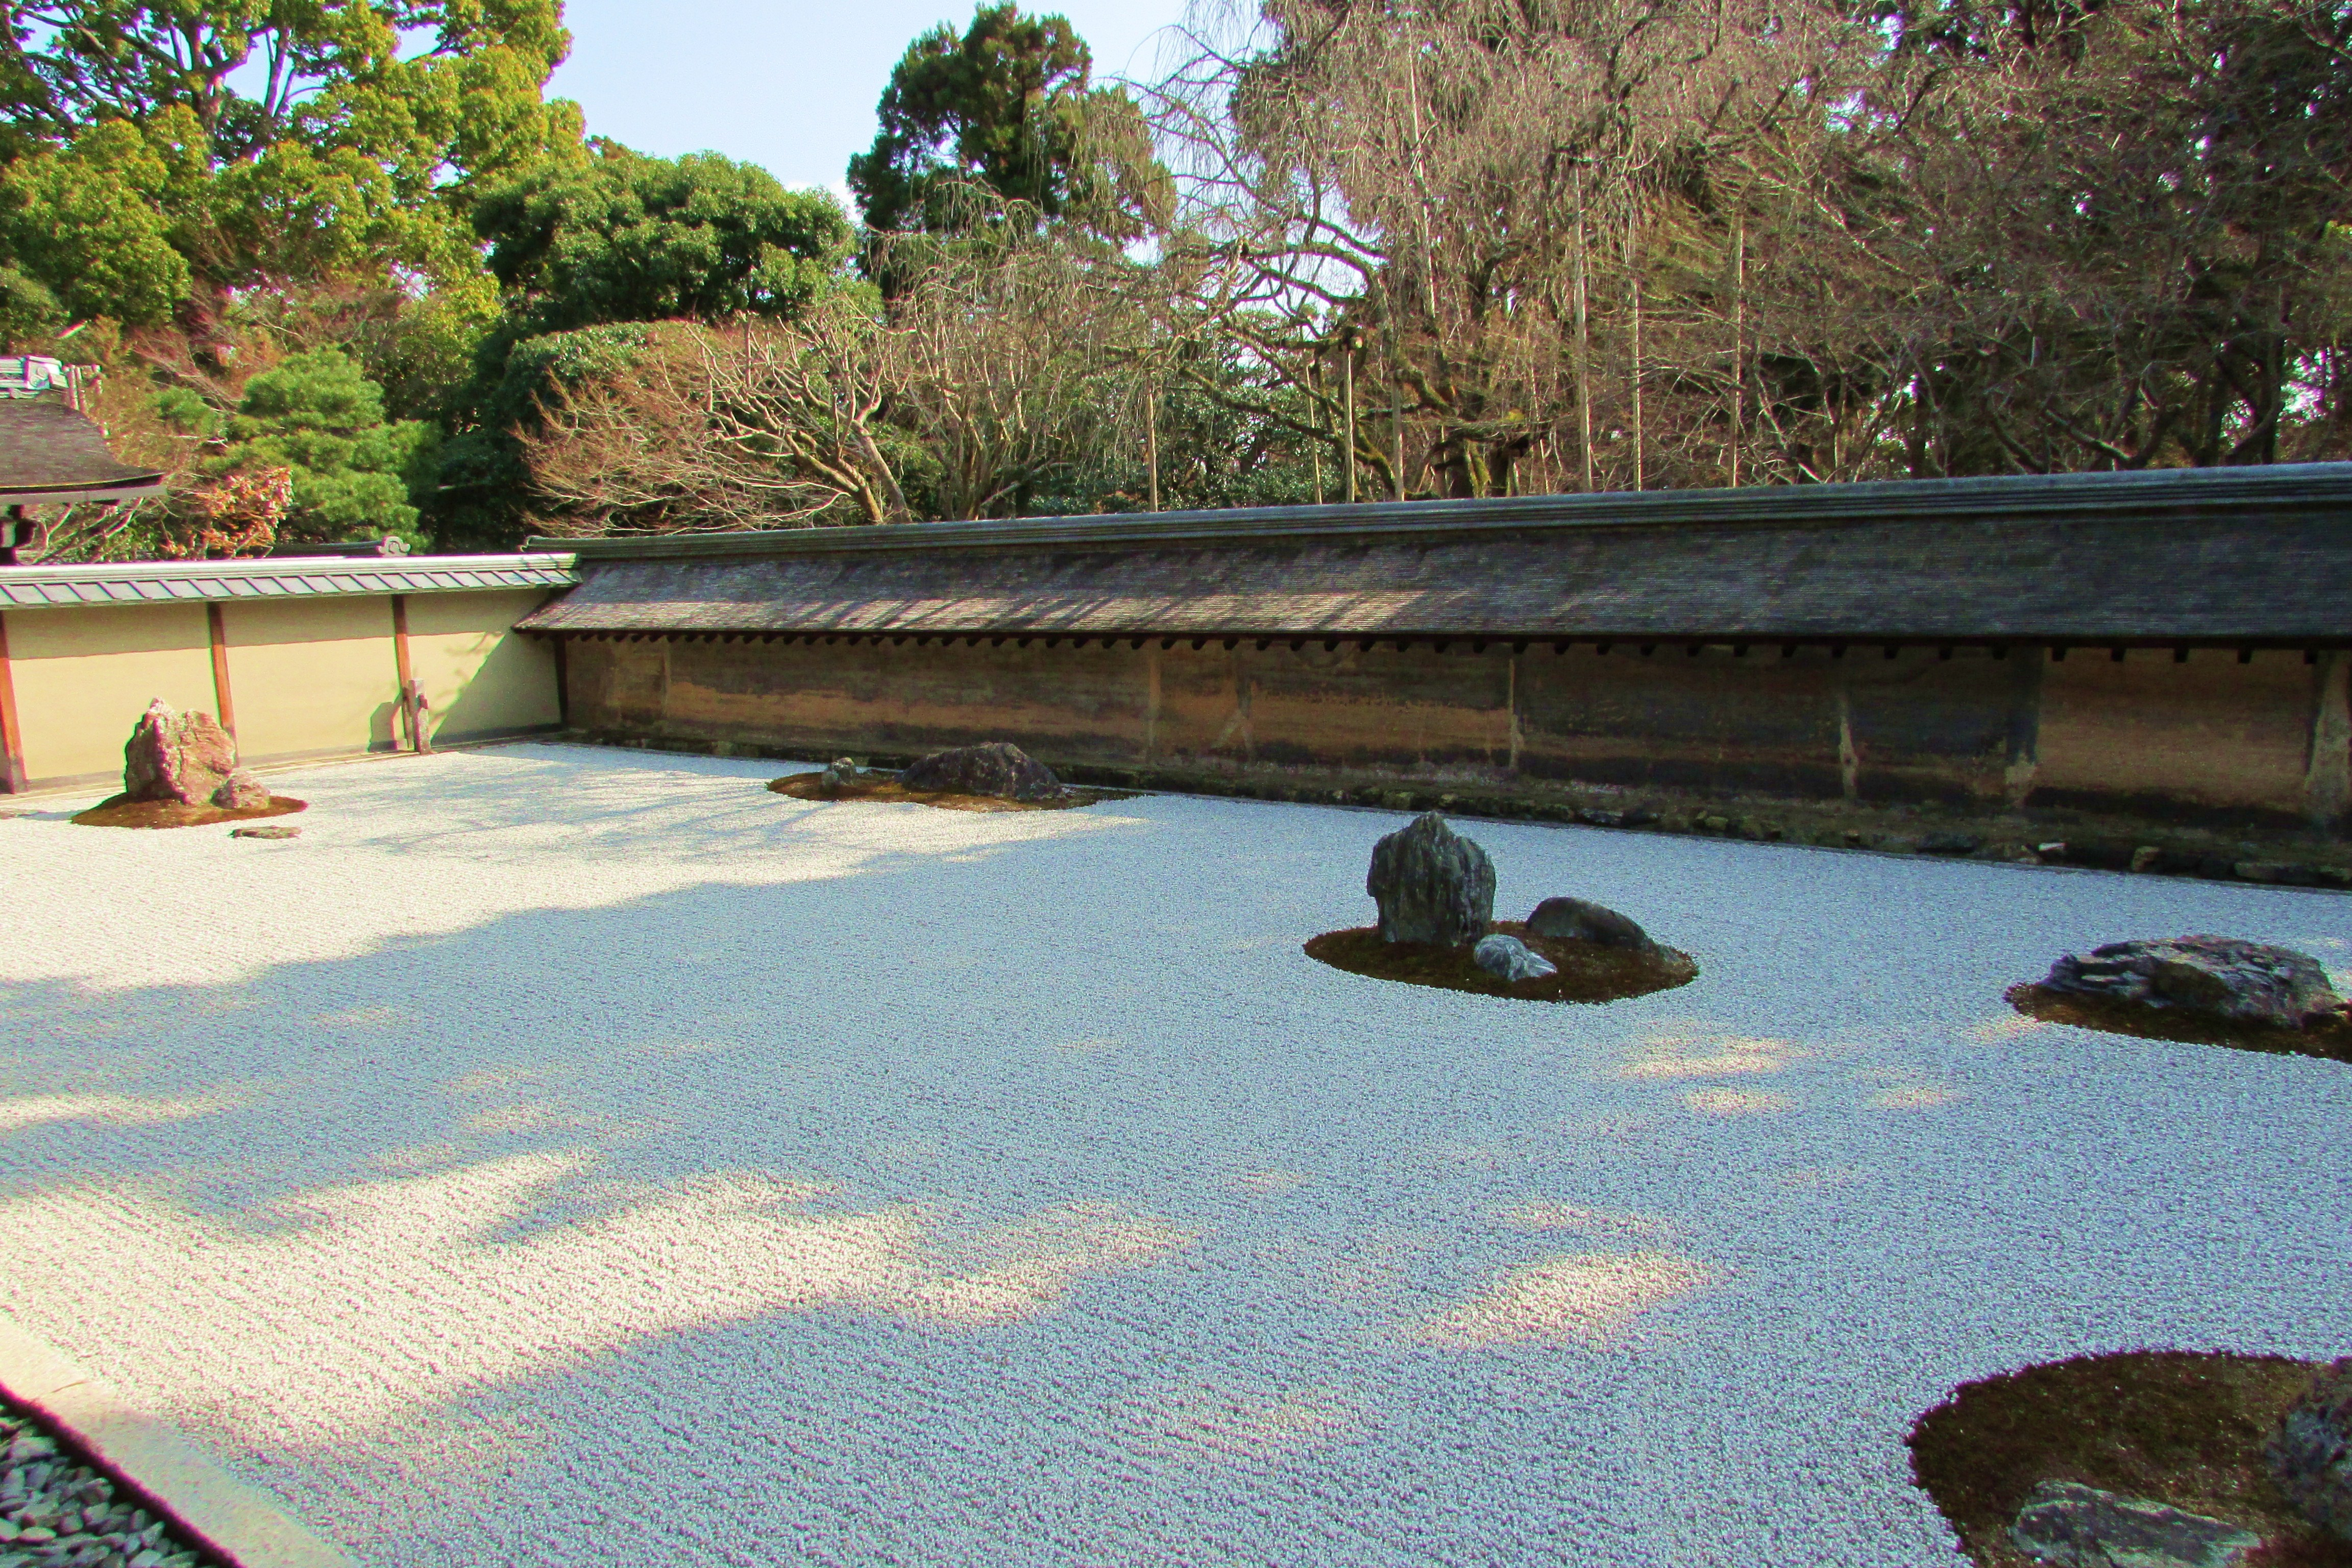 The hidden stone ryoanji zen rock garden japaneasy Pictures of zen rock gardens